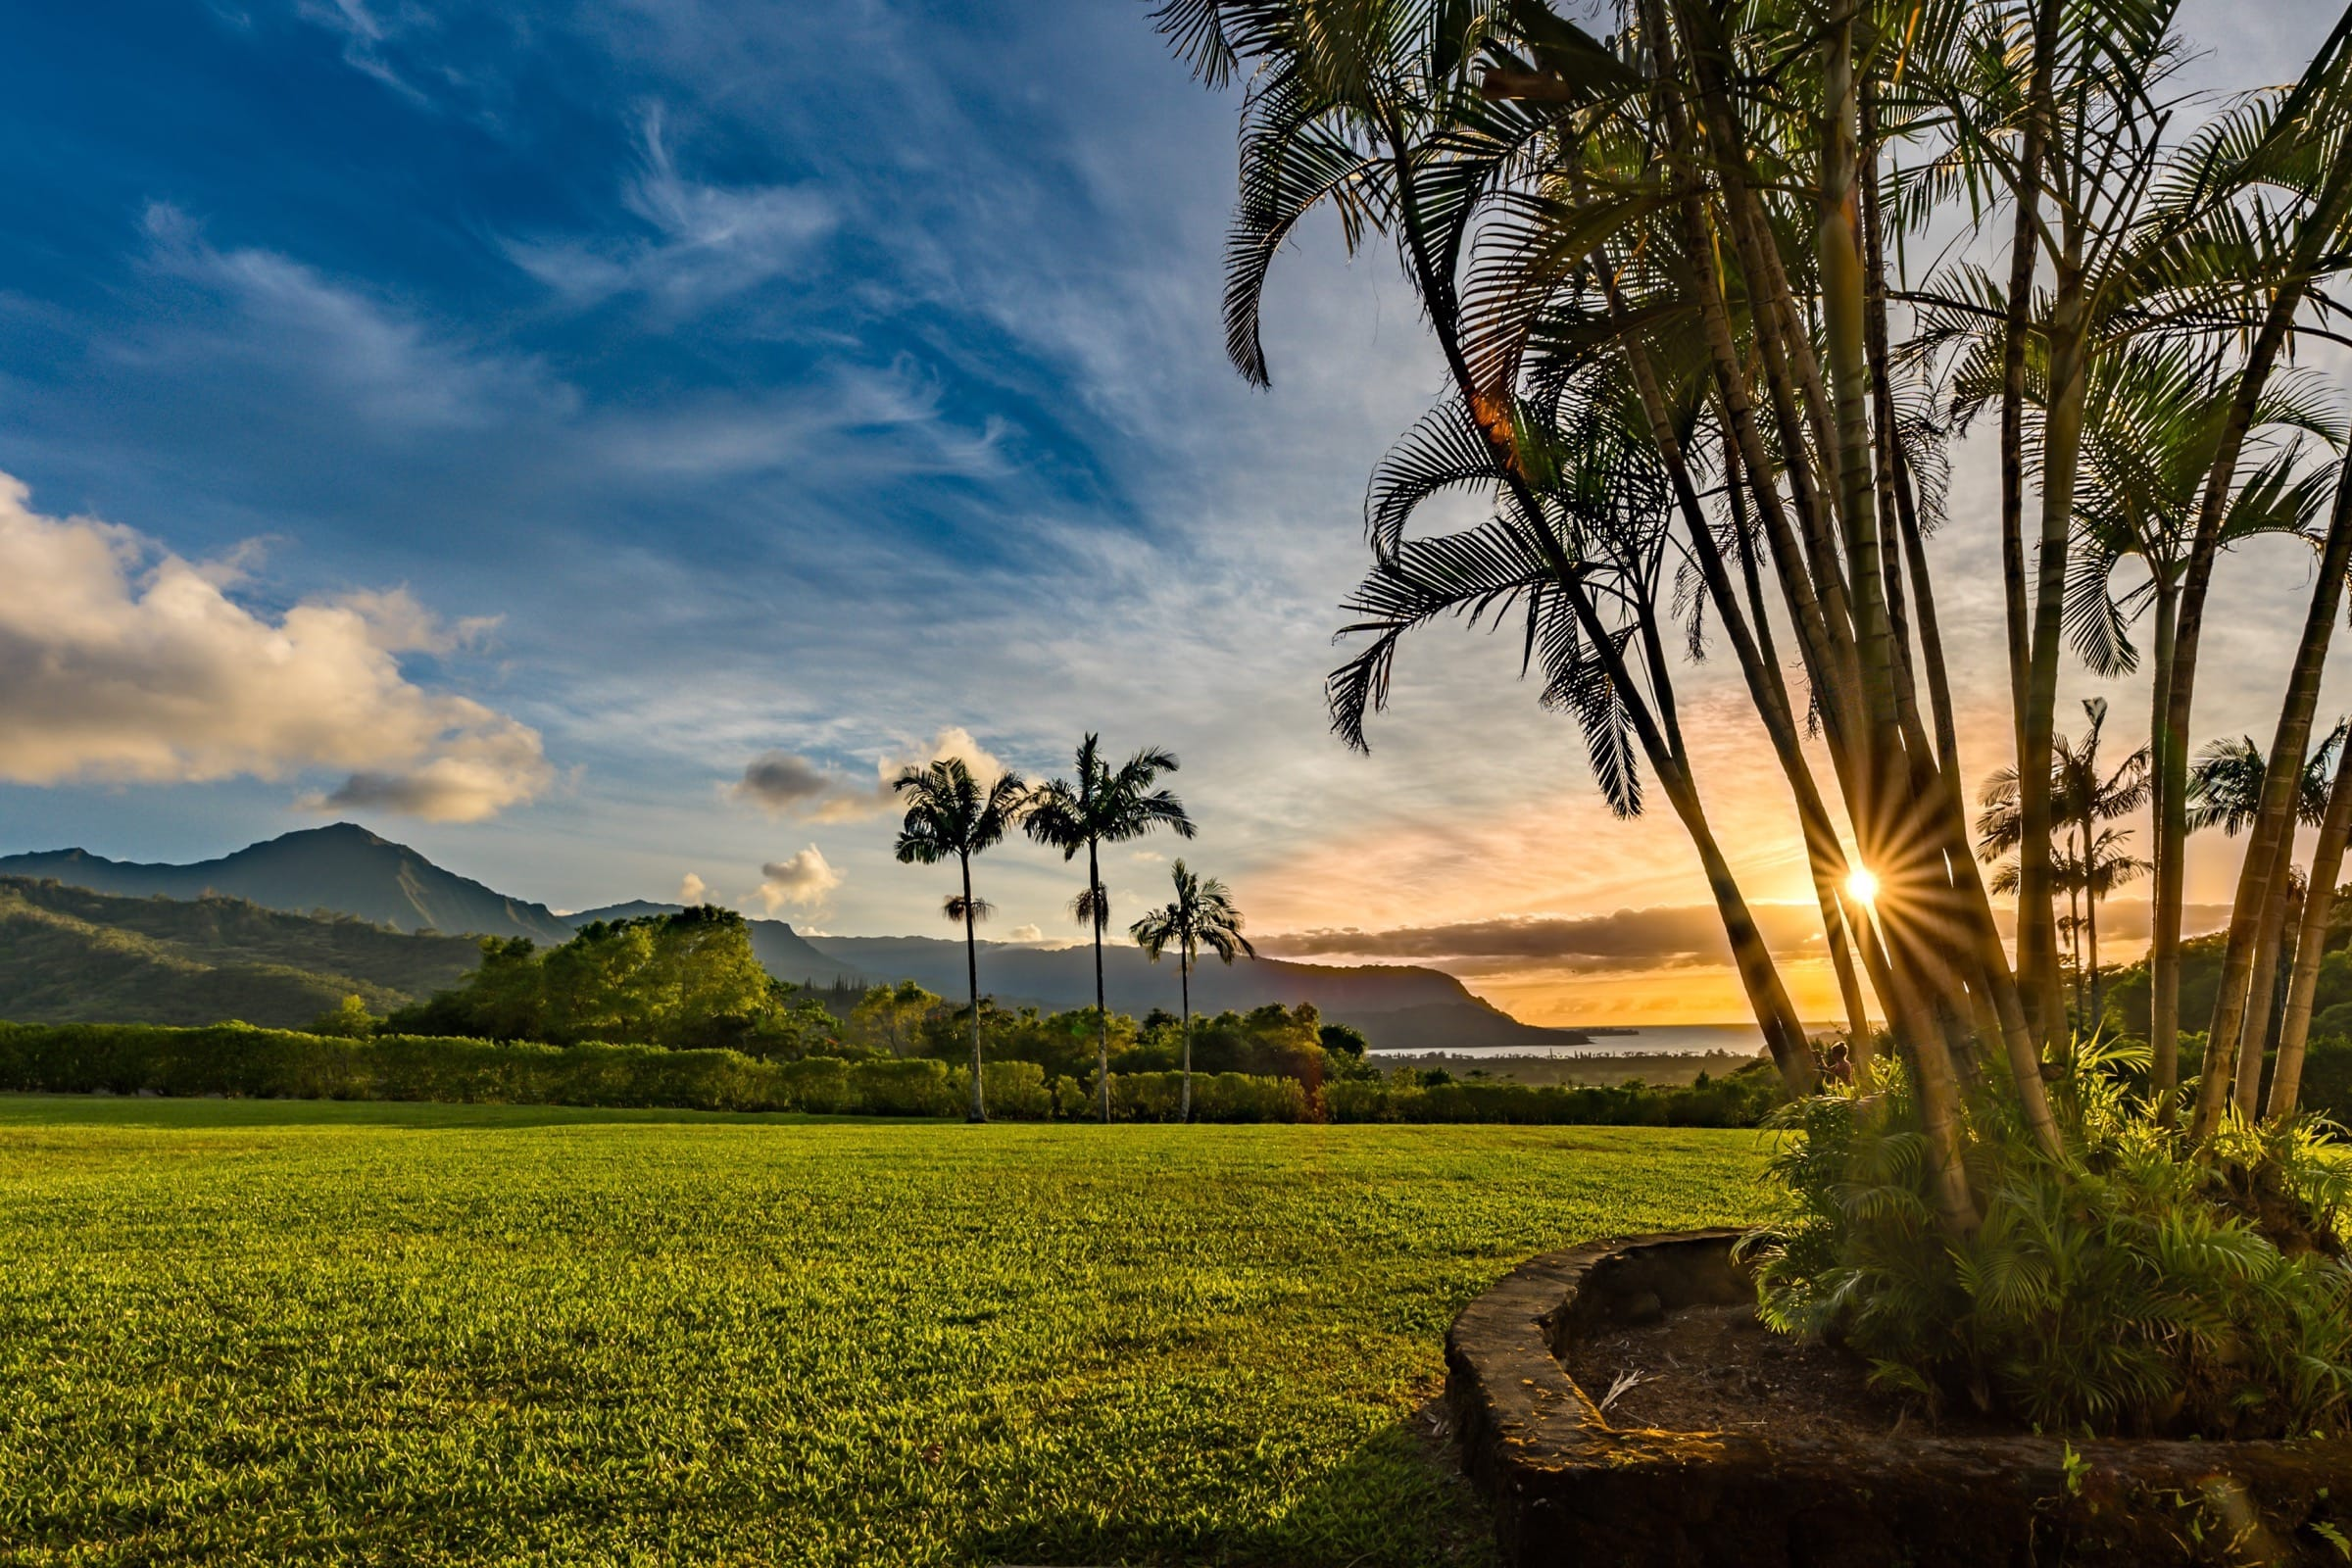 View of Hanalei Bay at Sunset